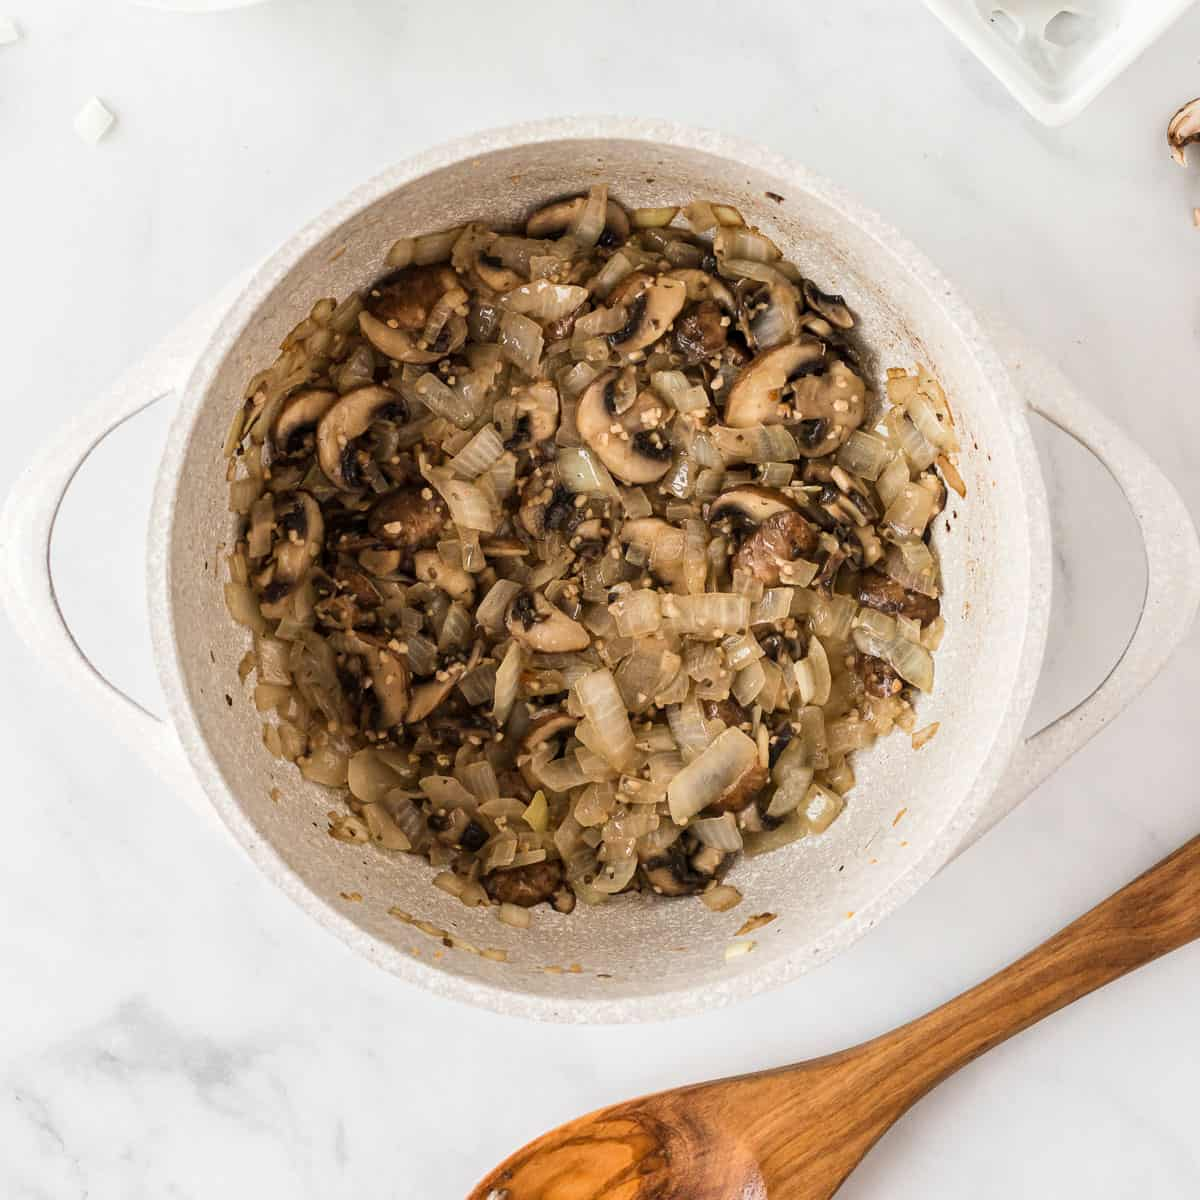 mushrooms, garlic, and onion cooked down in the pan